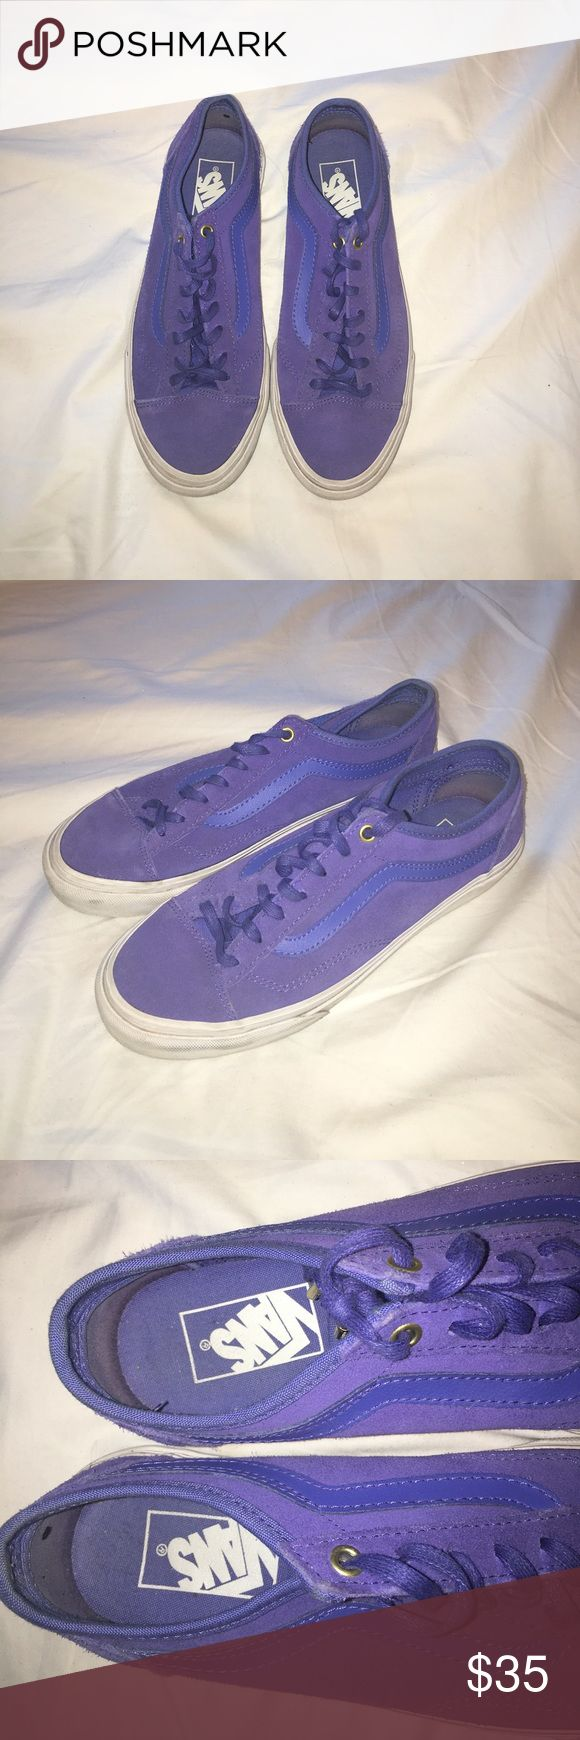 Purple Vans Like new condition purple vans.  Gold lace holes and dark blue leather sides! Truly a fun and funky pair of shoes! Vans Shoes Sneakers